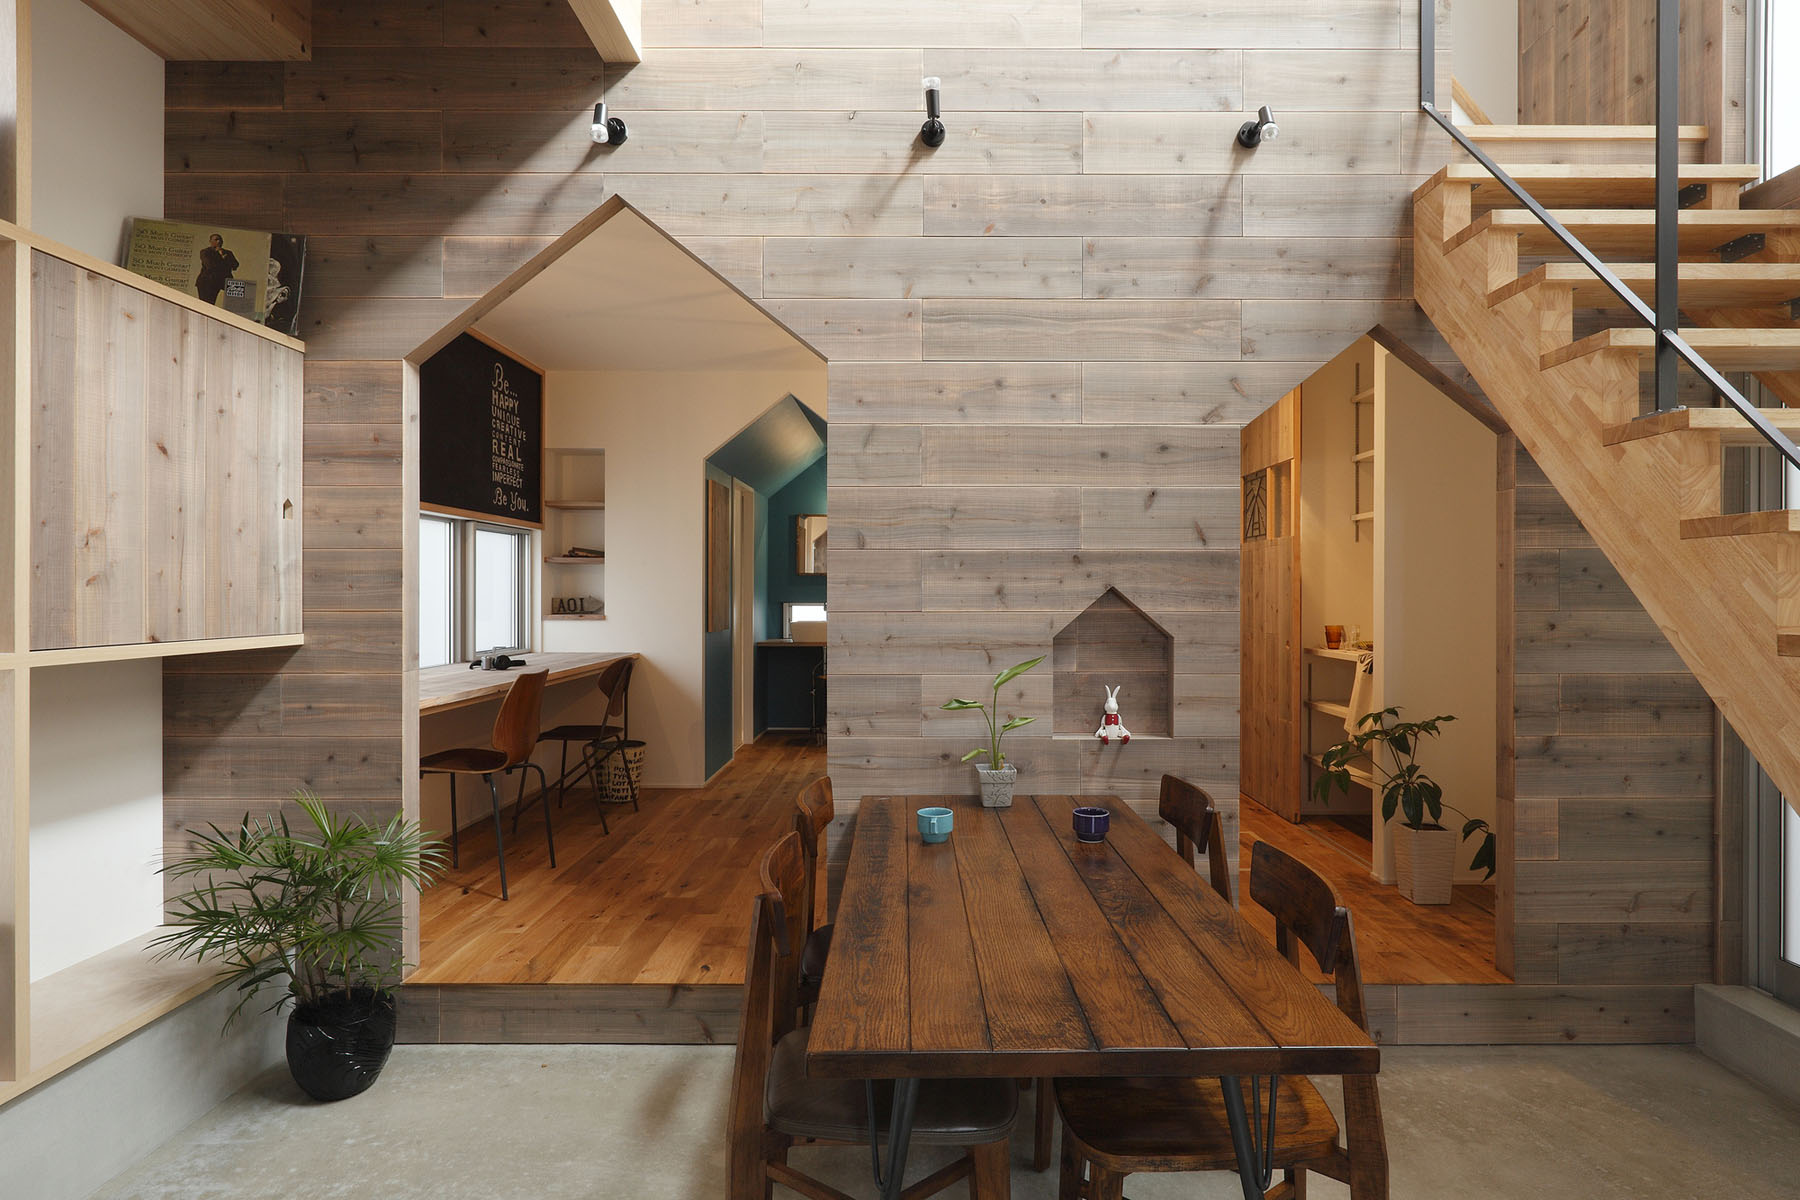 Small Modern House In Kyoto With Wood Interiors iDesignrch ... - ^